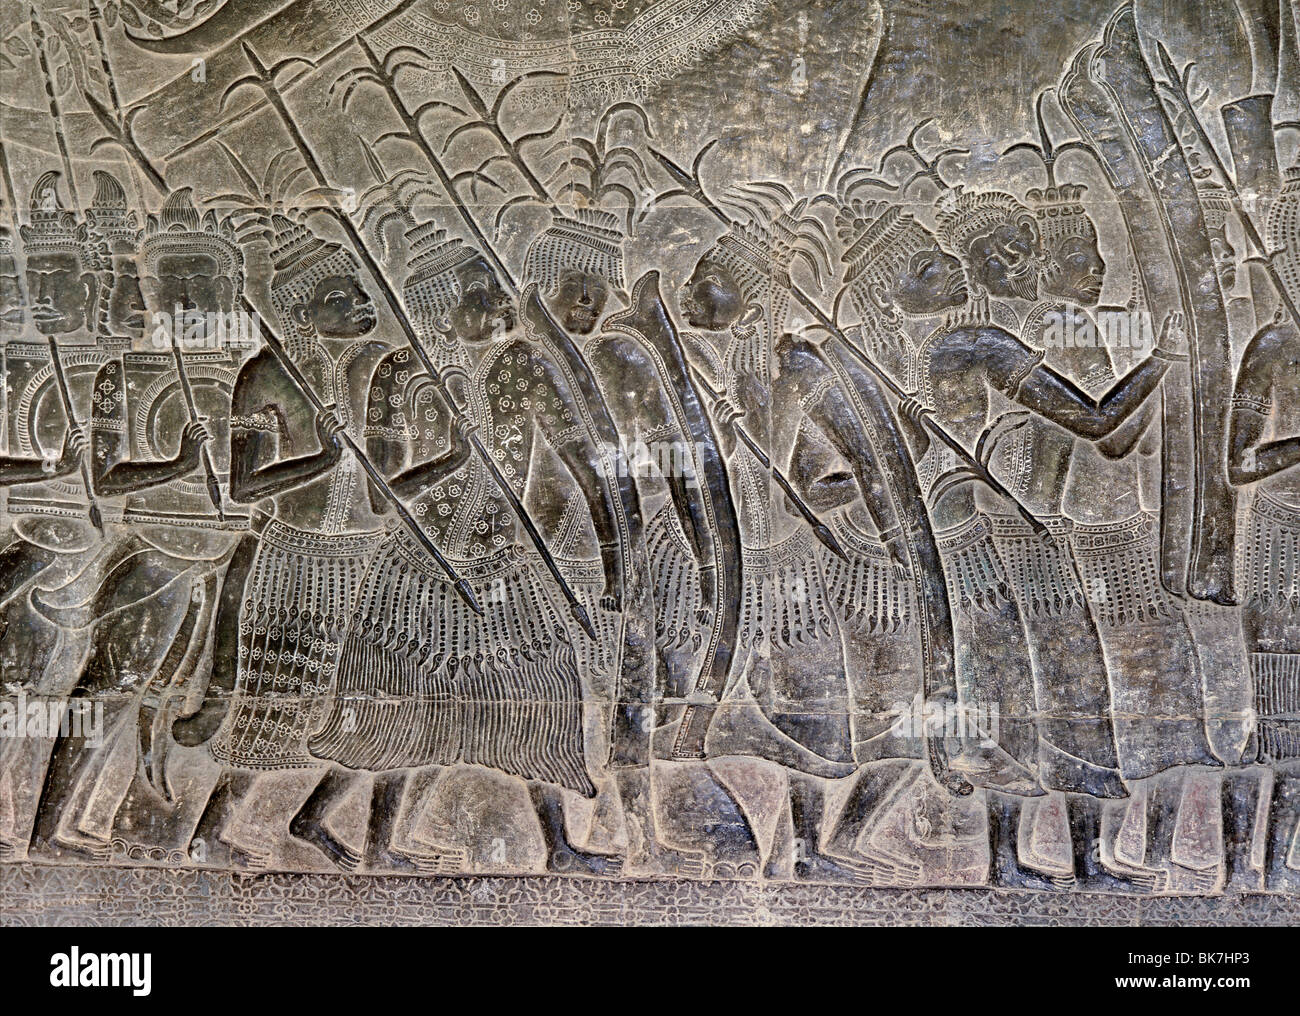 Thais marching as allies of the Khmer army, Angkor Wat, Angkor, UNESCO World Heritage Site, Cambodia - Stock Image